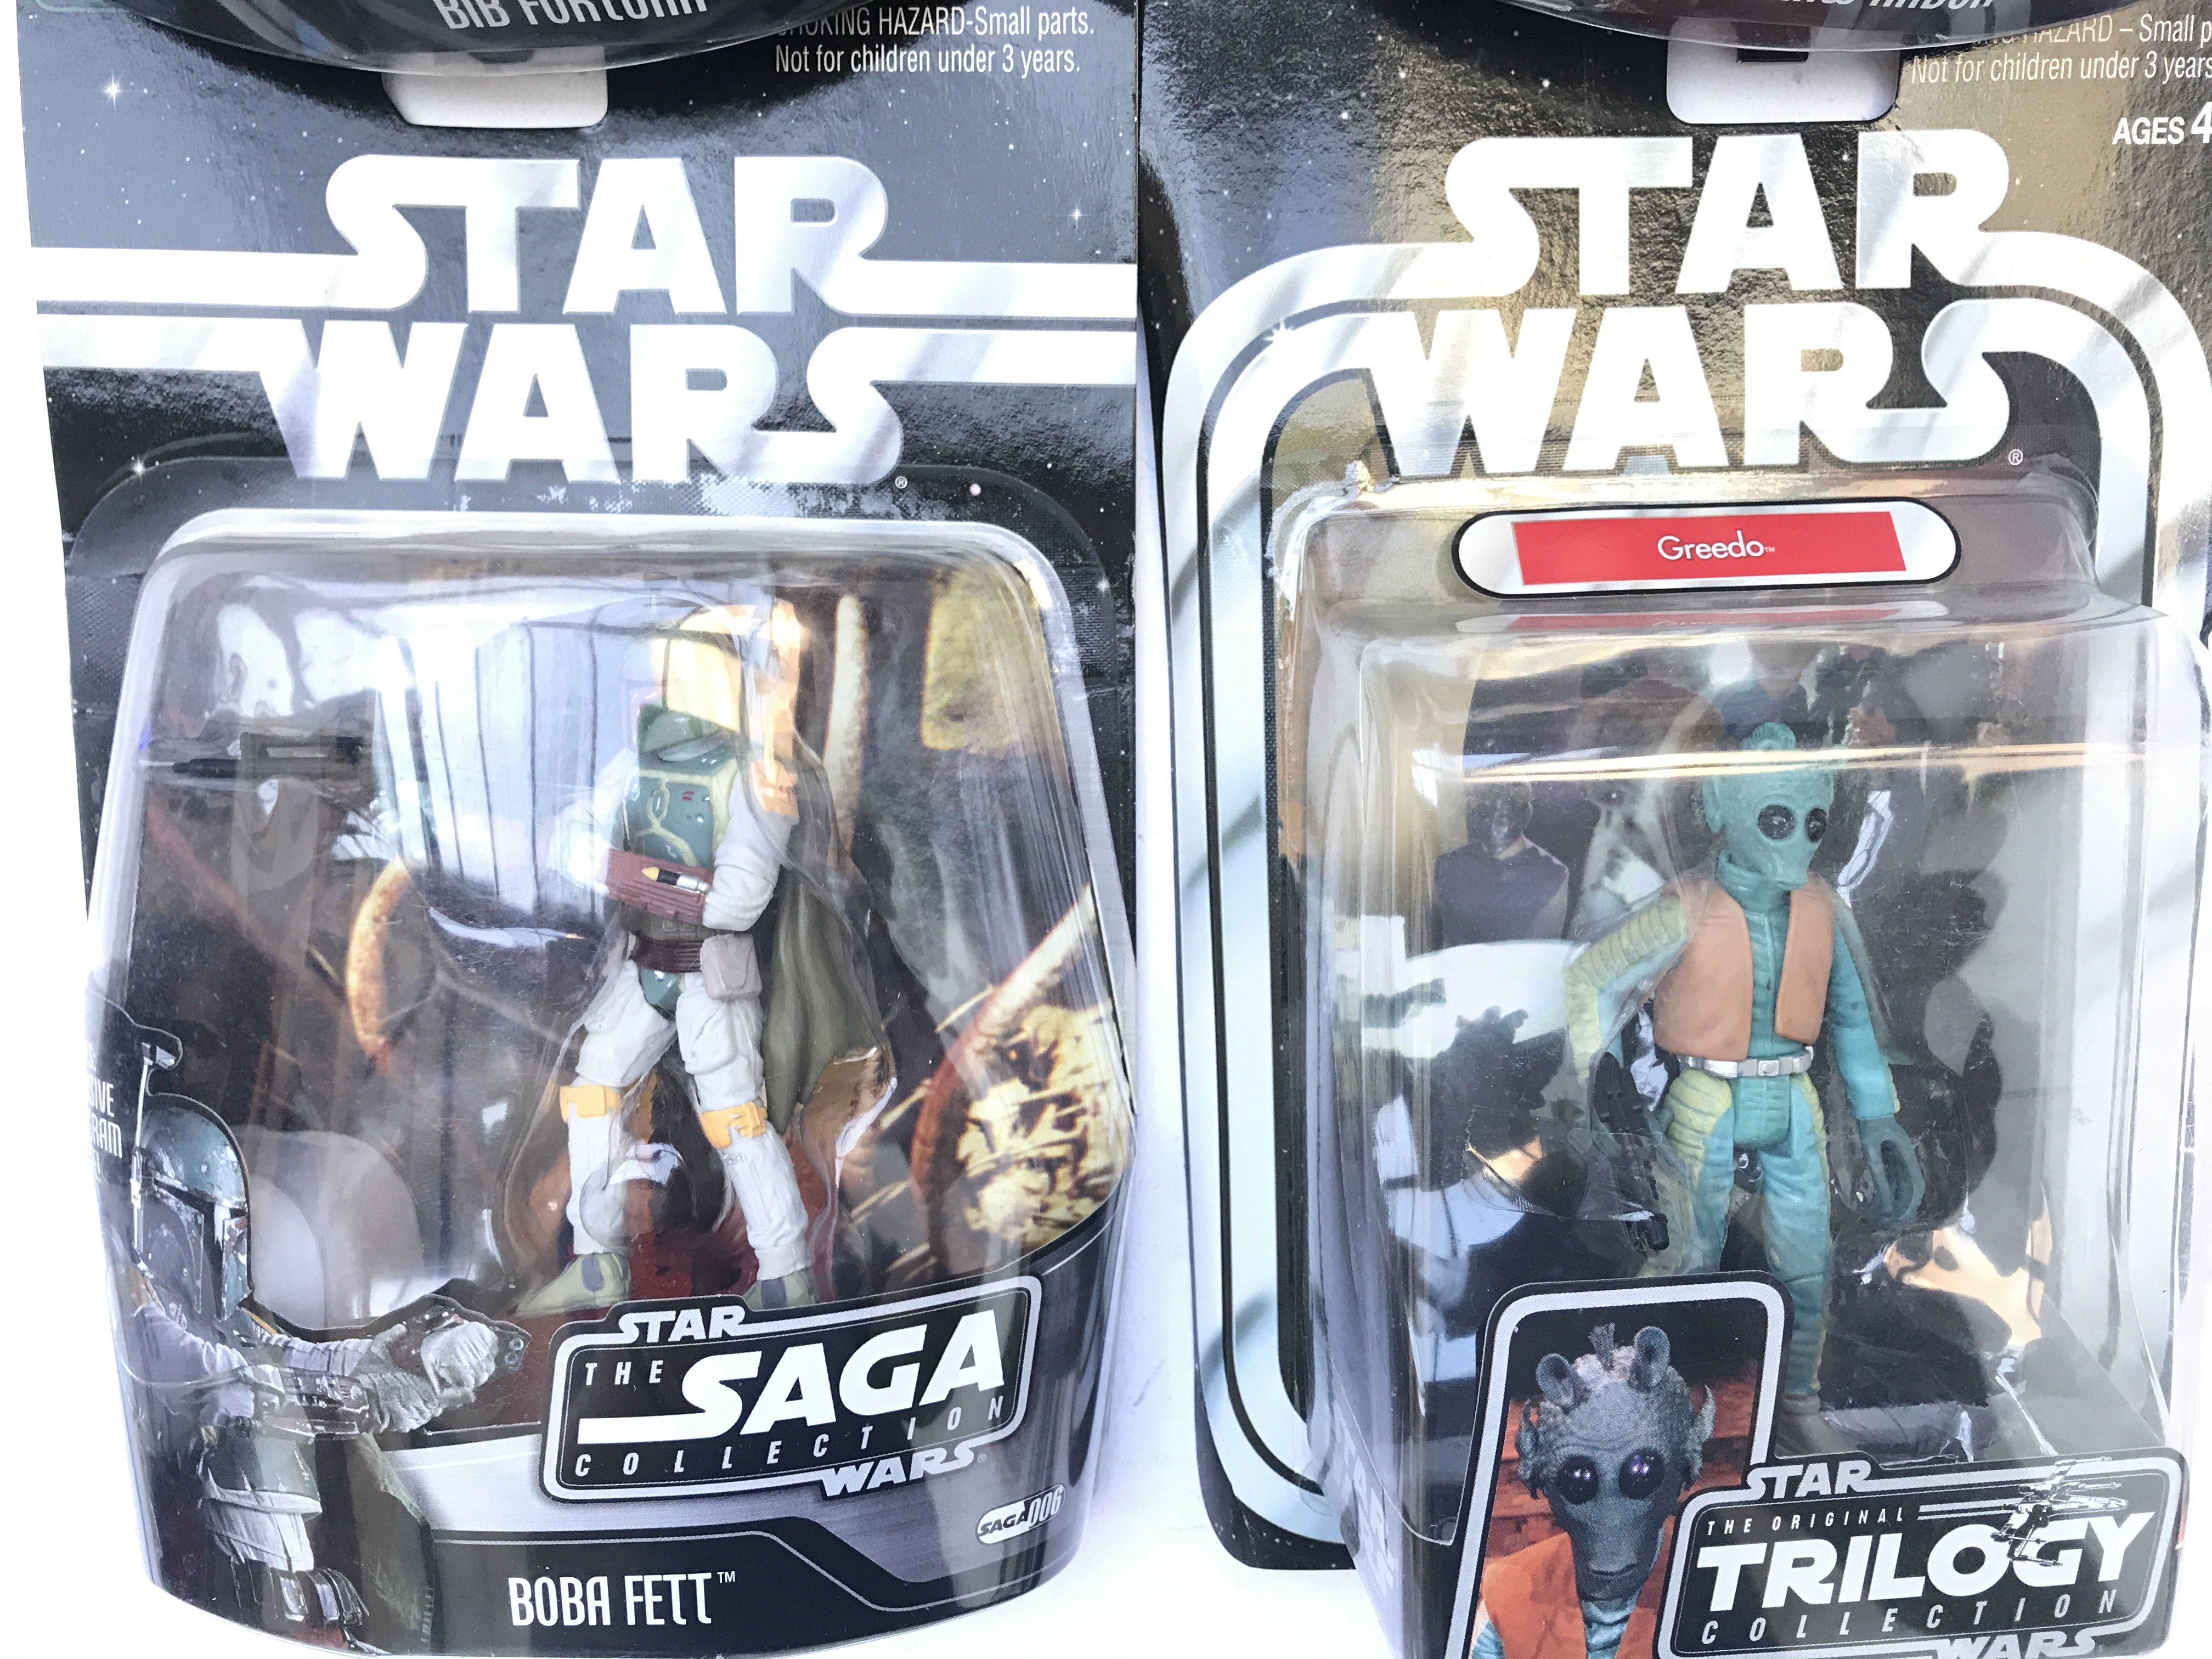 4 X Star Wars Carded Figures 3 from the Saga Colle - Image 3 of 3